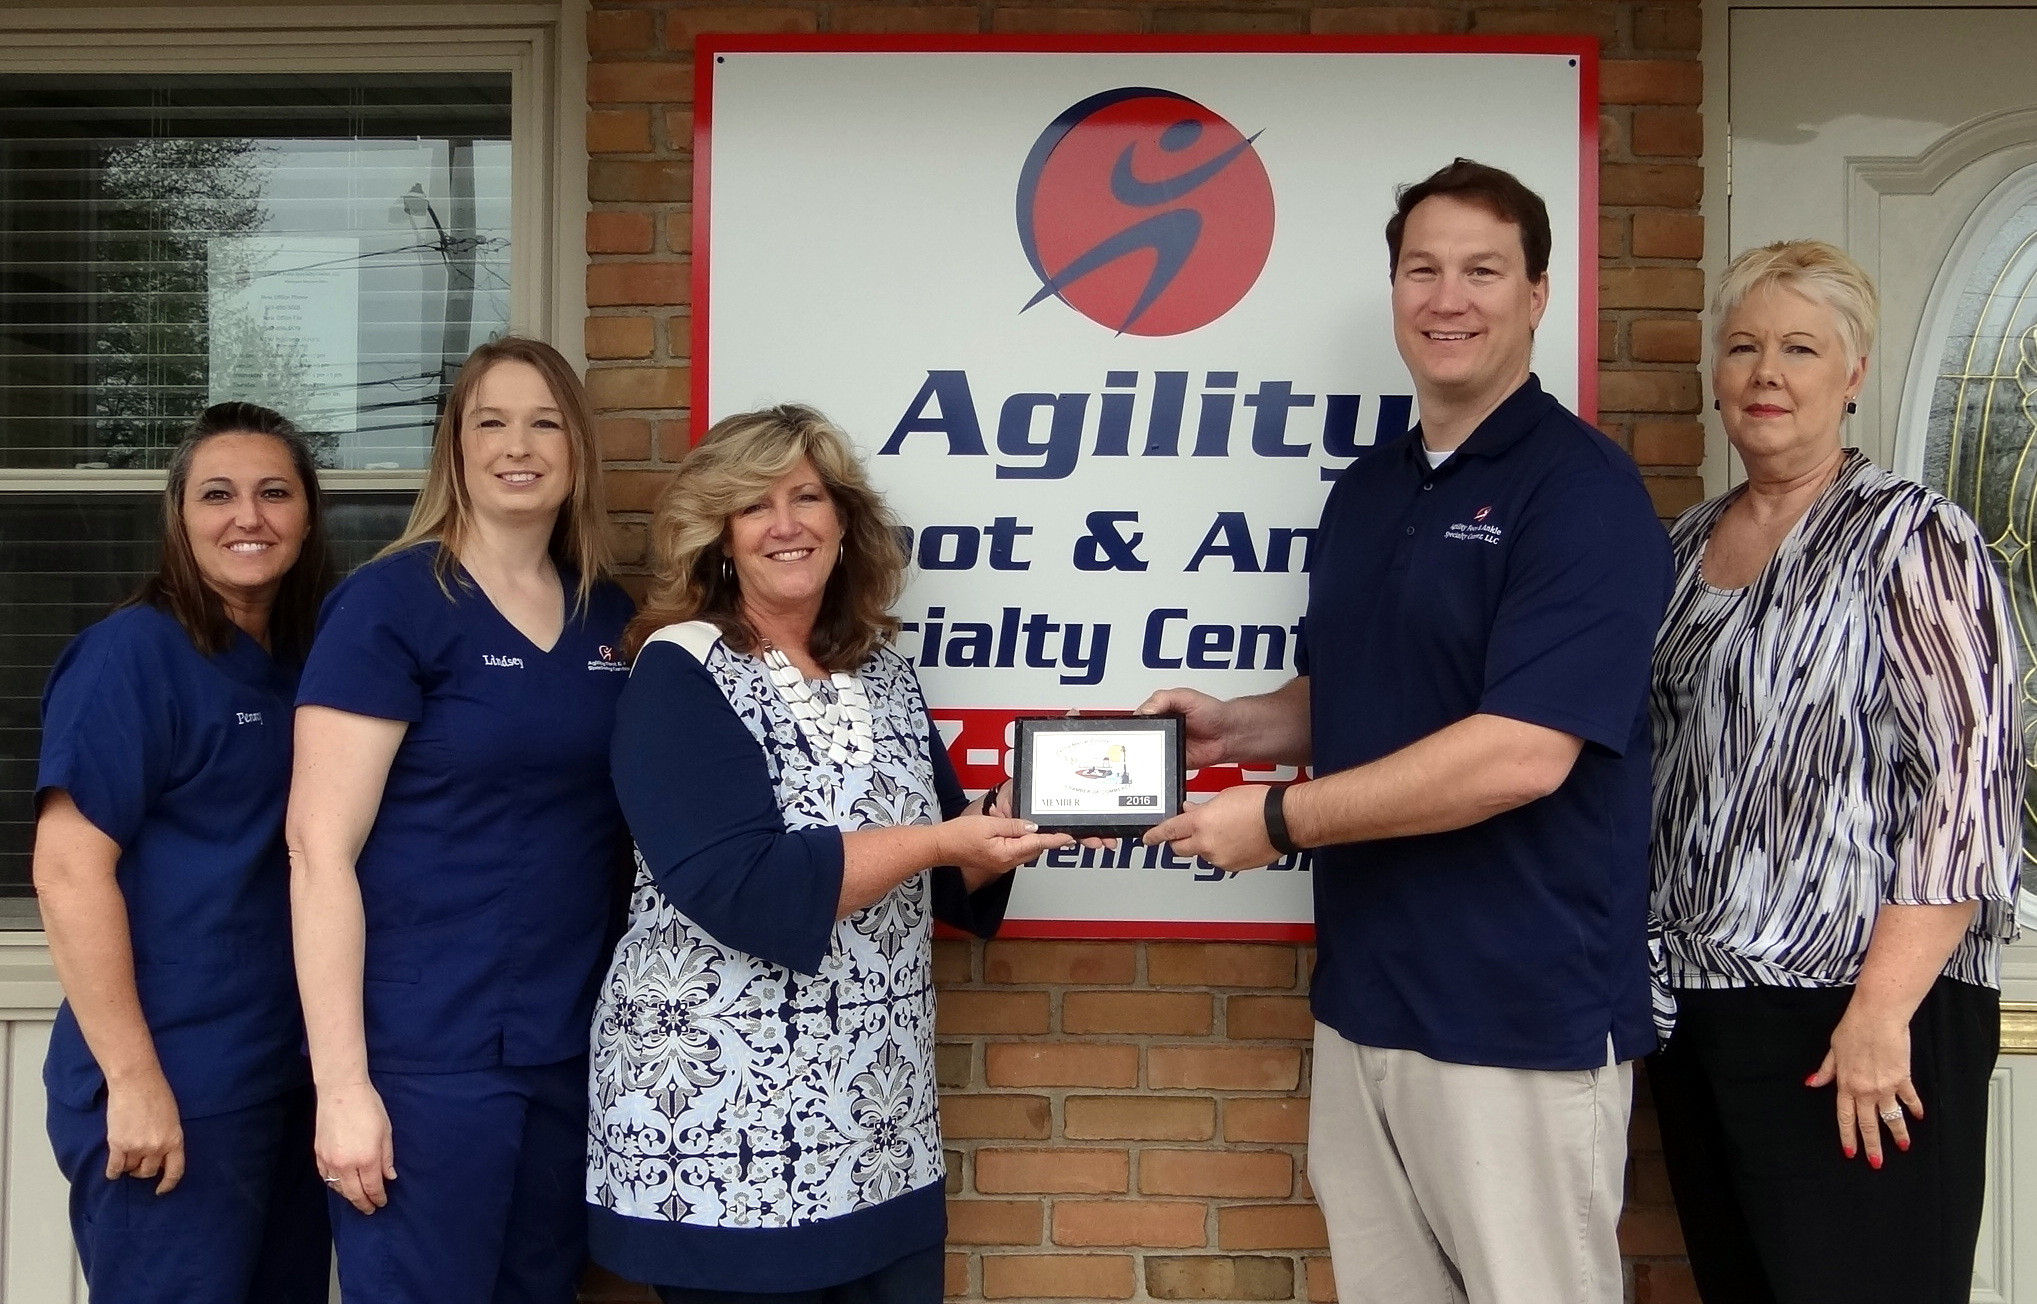 Agility Foot & Ankle Specialty Center, LLC Joins Celina Mercer Co Chamber